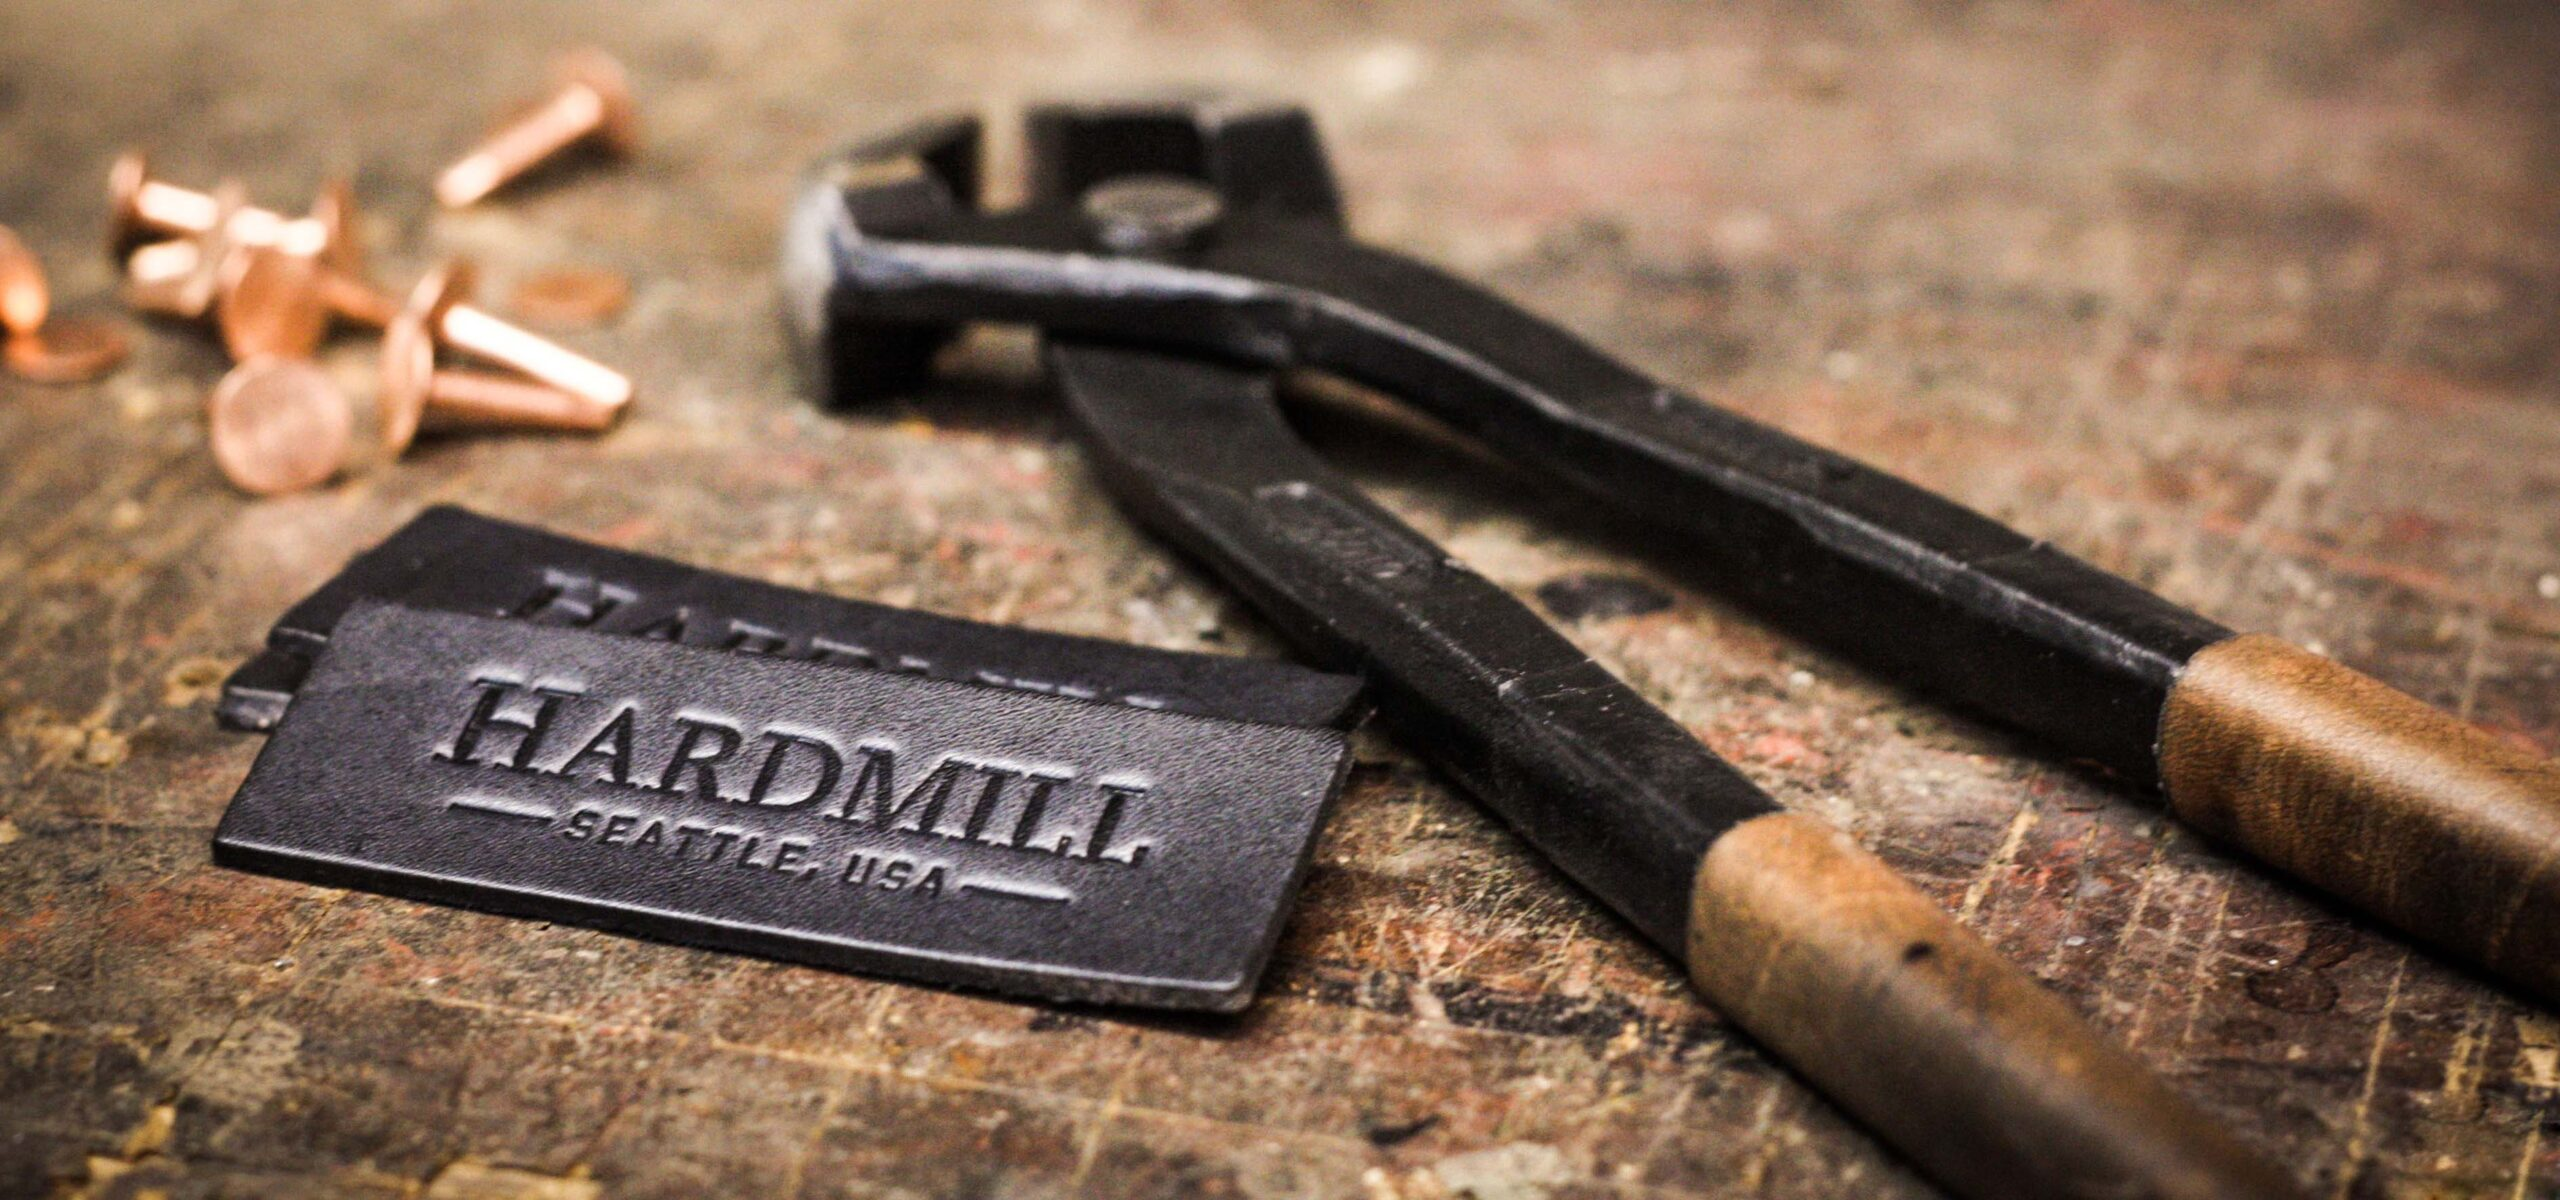 Leather working tools and leather labels for Hardmill retail store.